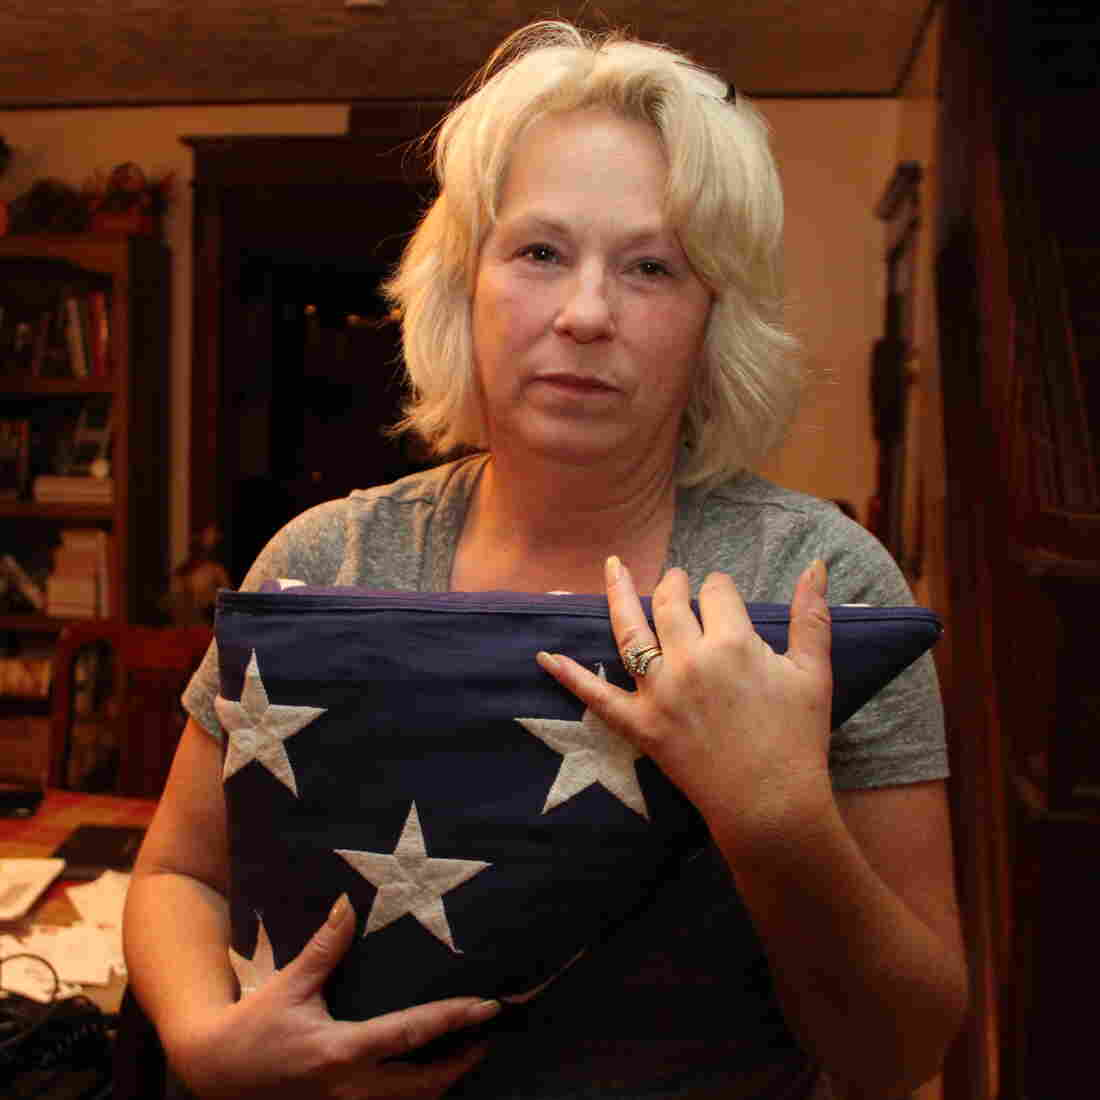 Anna holds the flag that was draped over Nick's coffin at his memorial service. She and her husband, Michael, have created a shrine to Nick in their dining room.